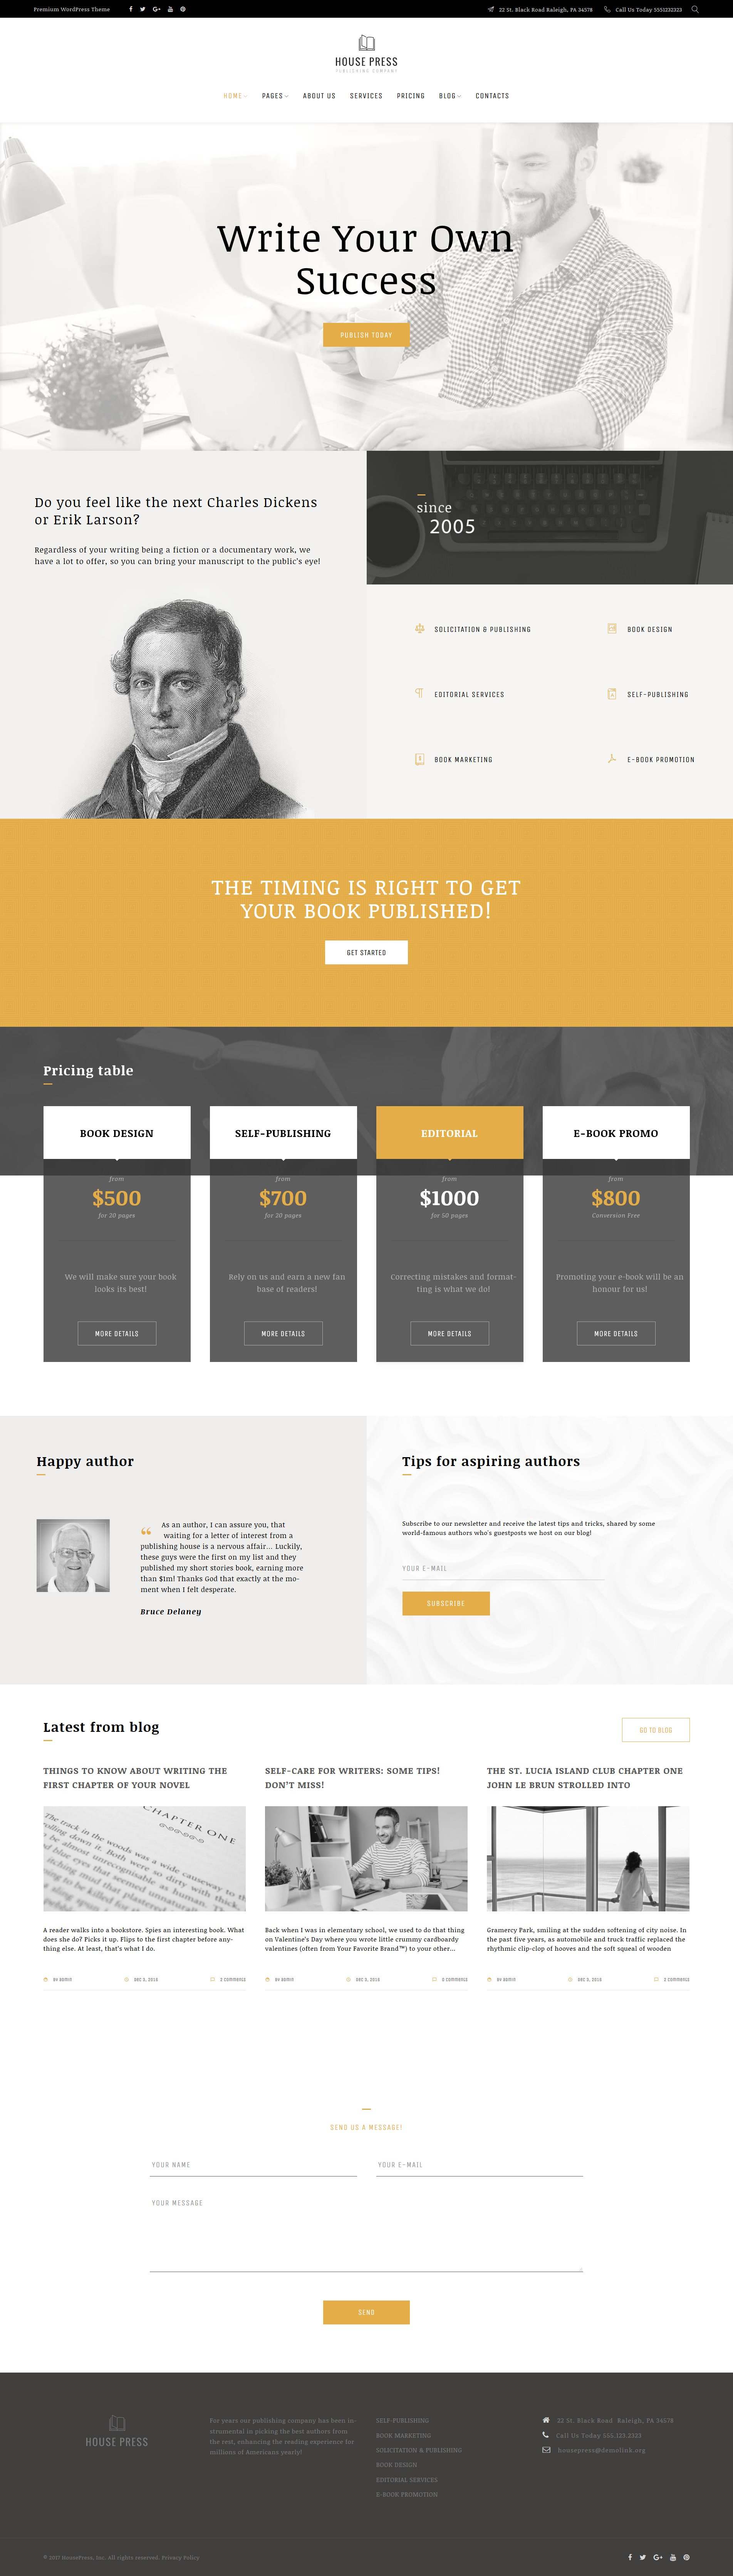 Responsivt House Press - Publishing Company WordPress-tema #63528